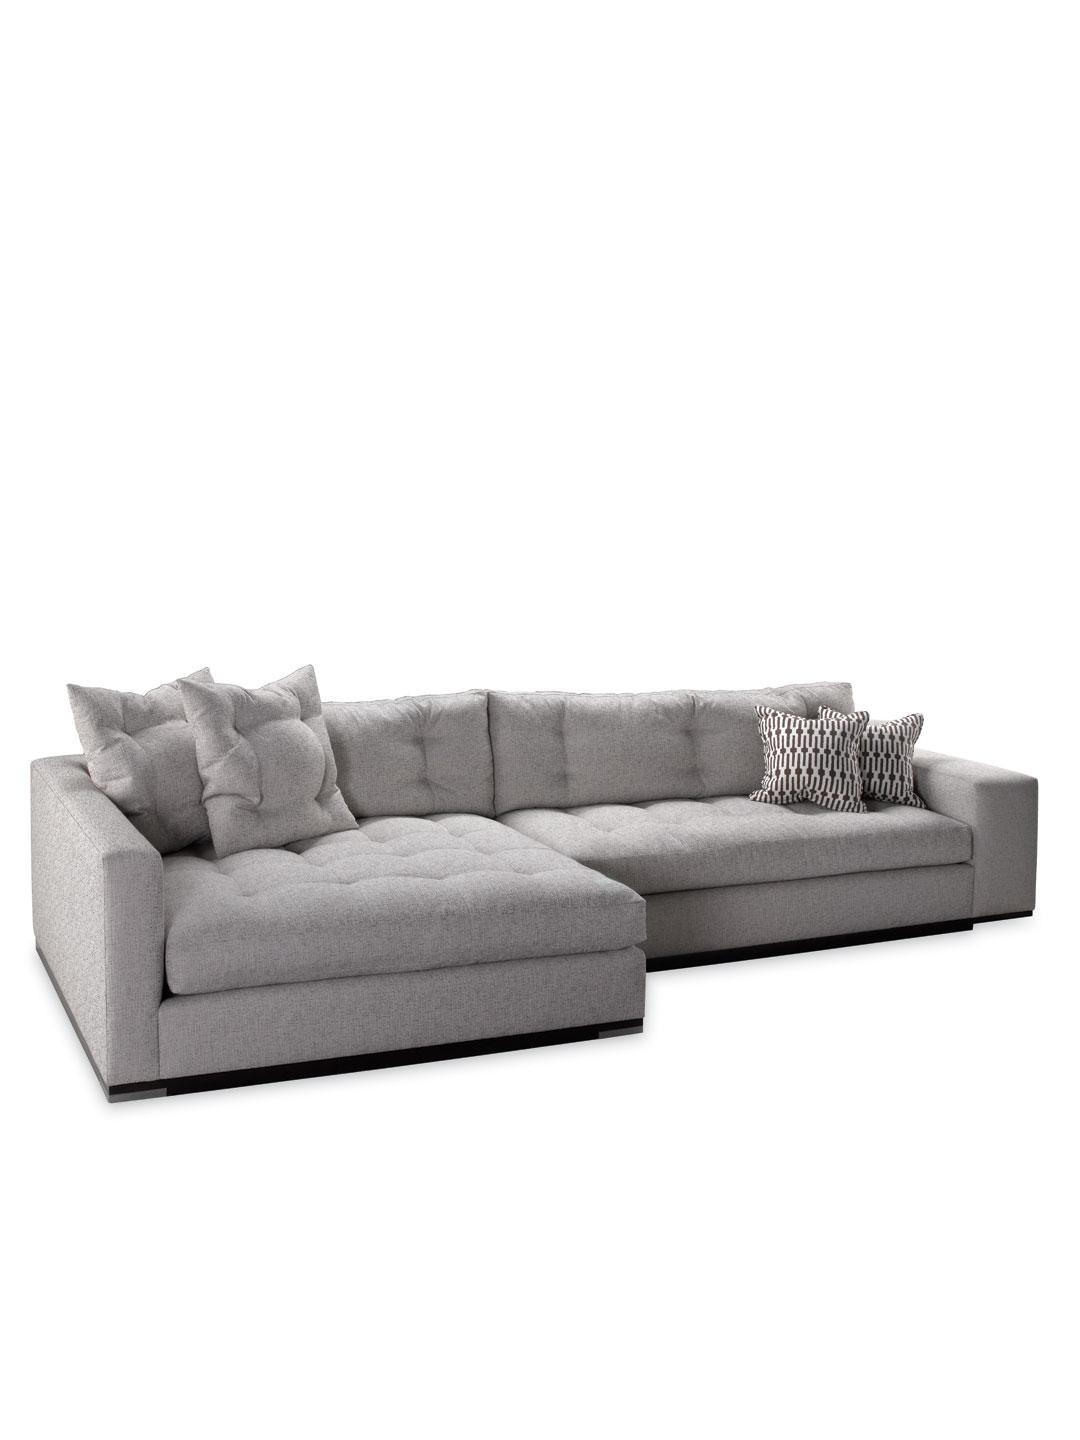 Boston Interiors Sofa 91 With Boston Interiors Sofa | Jinanhongyu Pertaining To Boston Interiors Sofas (Image 8 of 20)